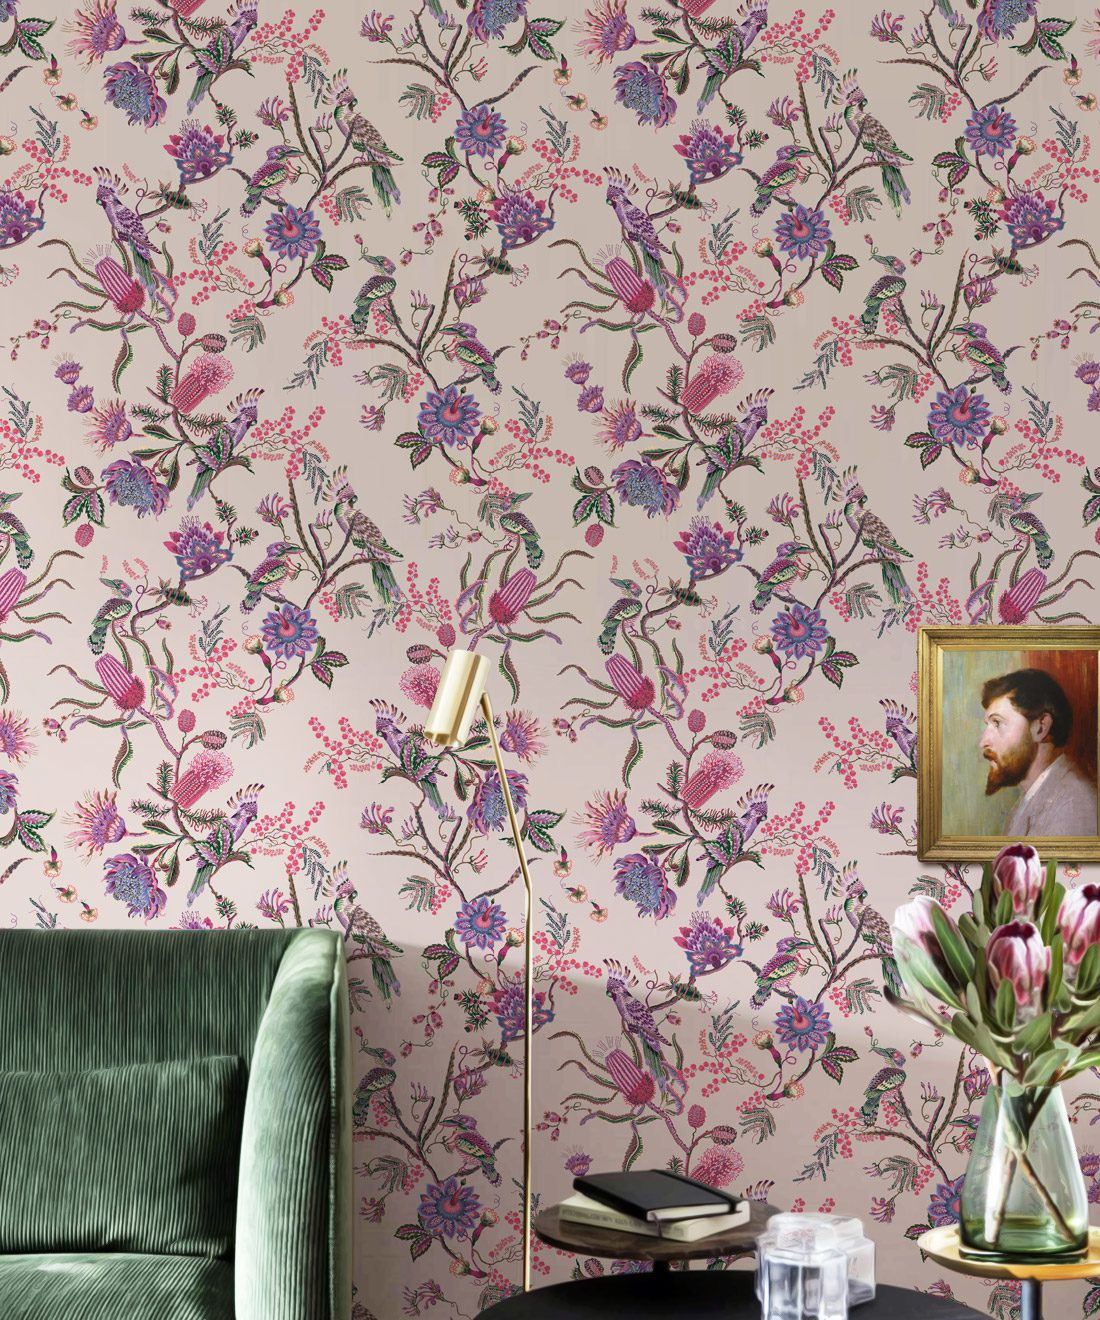 Matilda Wallpaper • Cockatoo, kookaburra • Australian Wallpaper • Milton & King USA • Pinky Insitu